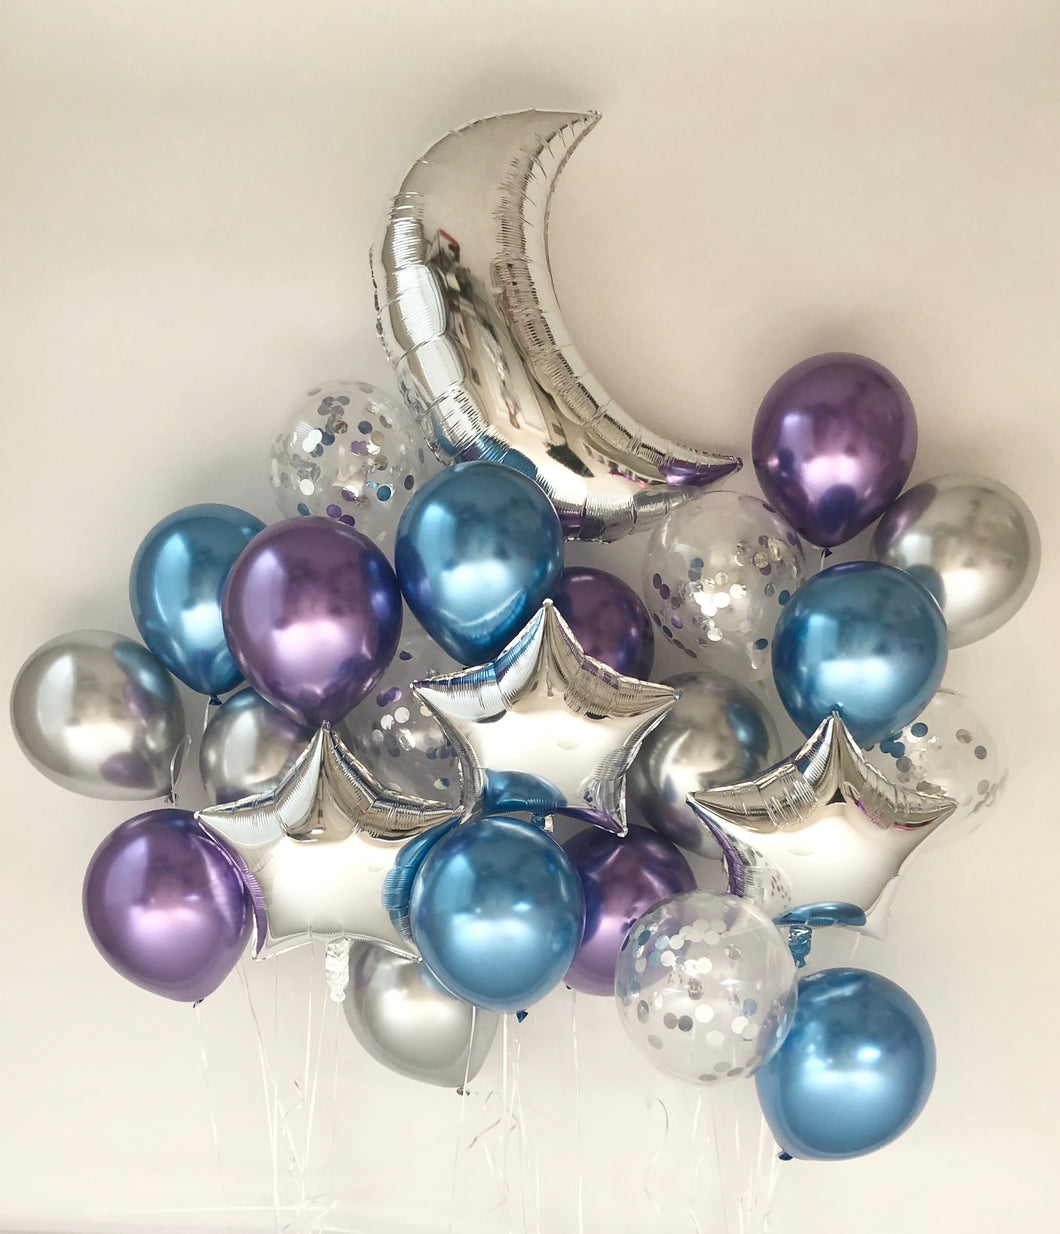 Sweet Moon 24 Piece Moon and Star Balloons Bouquet (Blue & Purple)